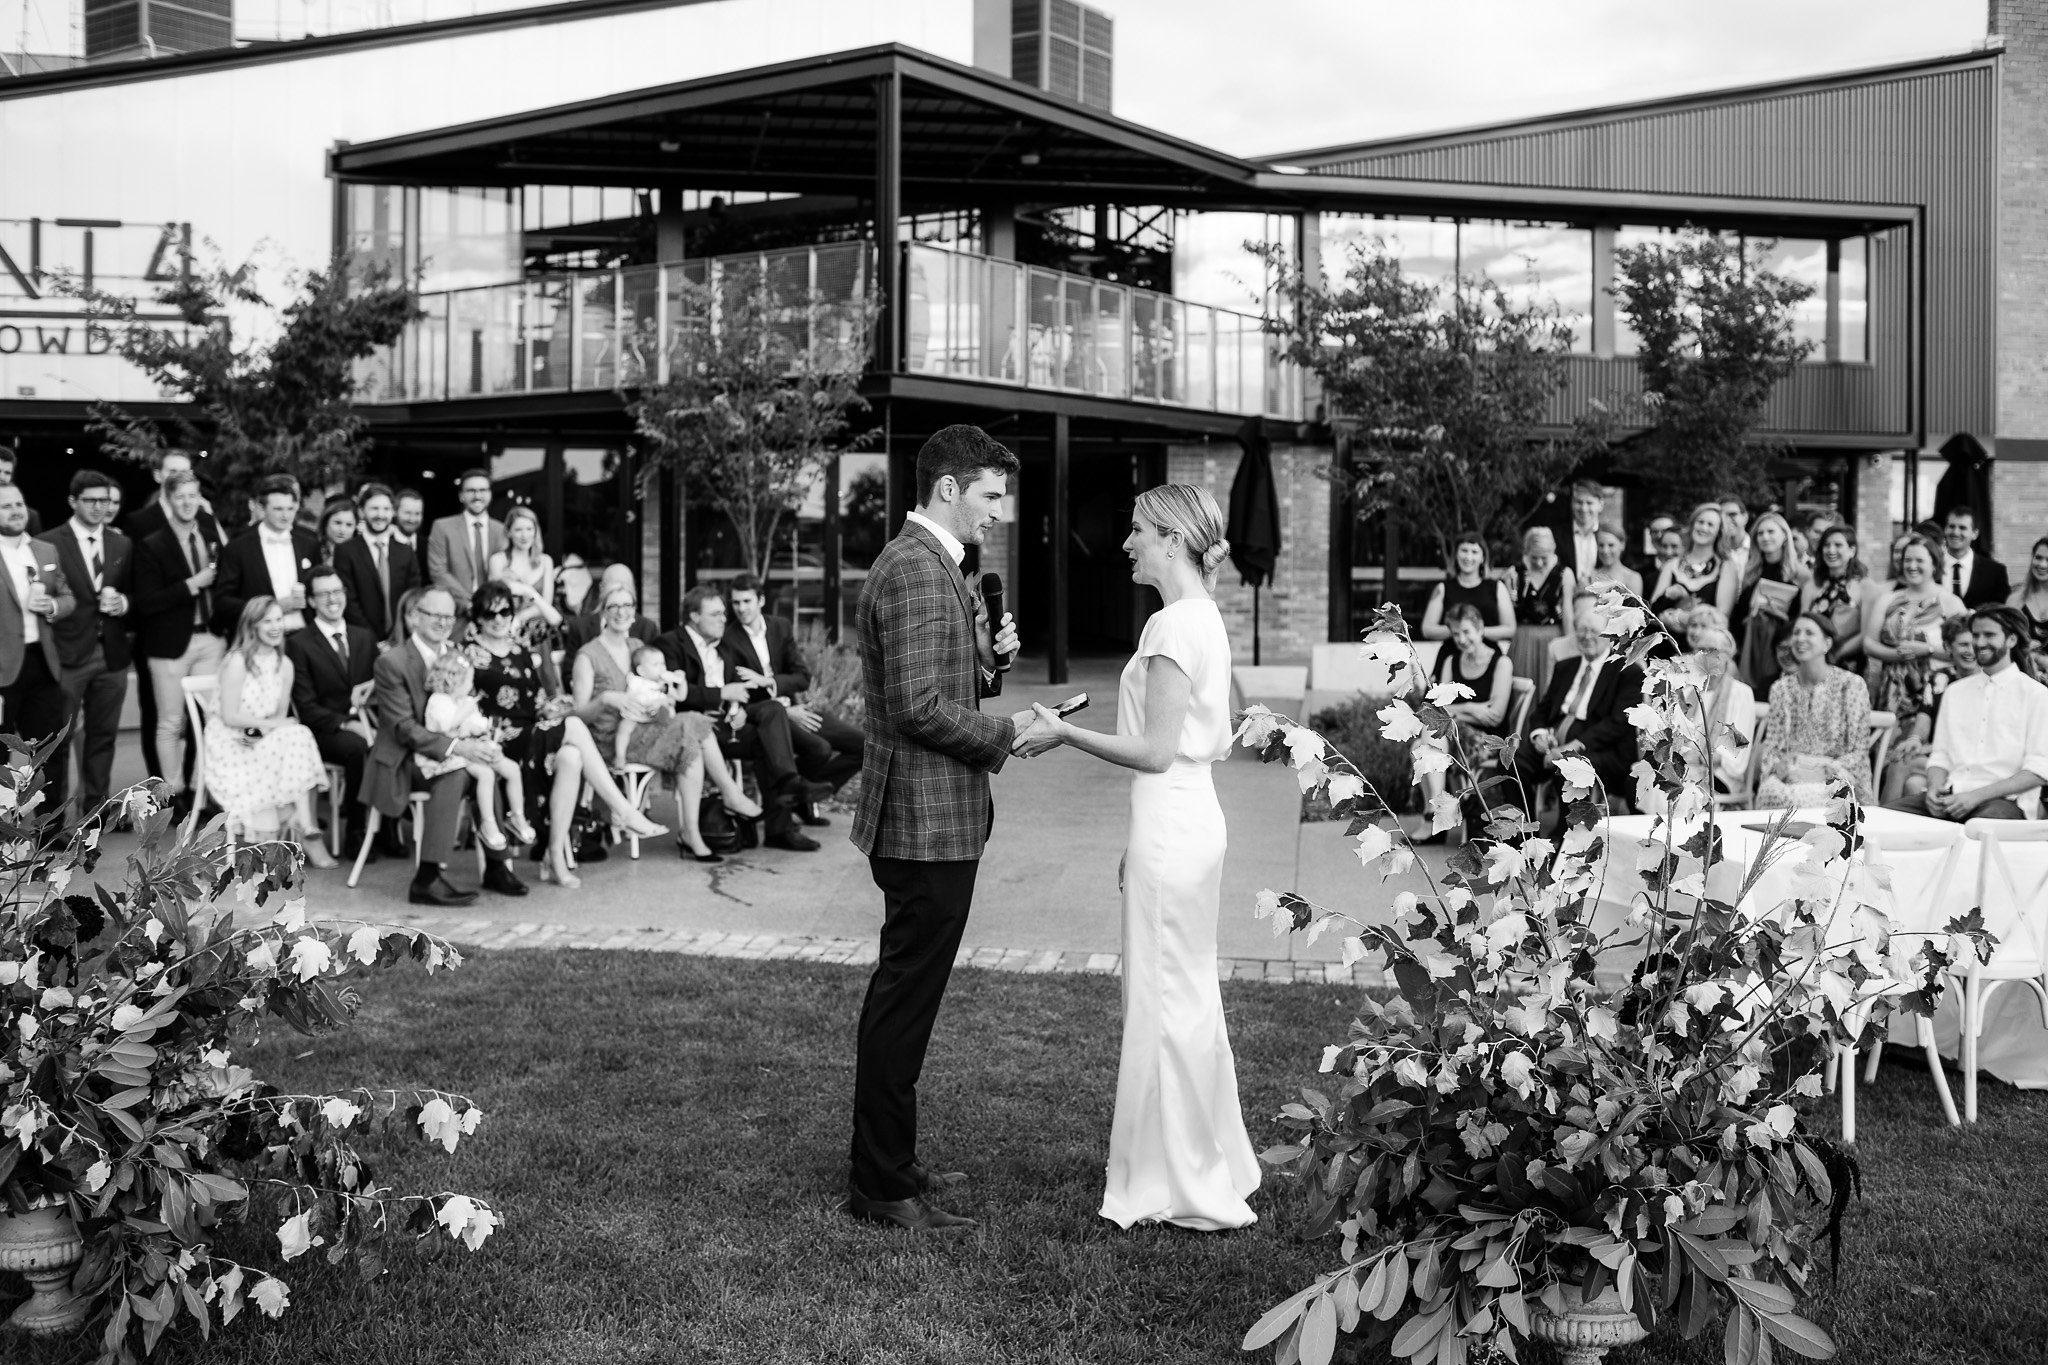 Wedding at Plant 4 in Bowden